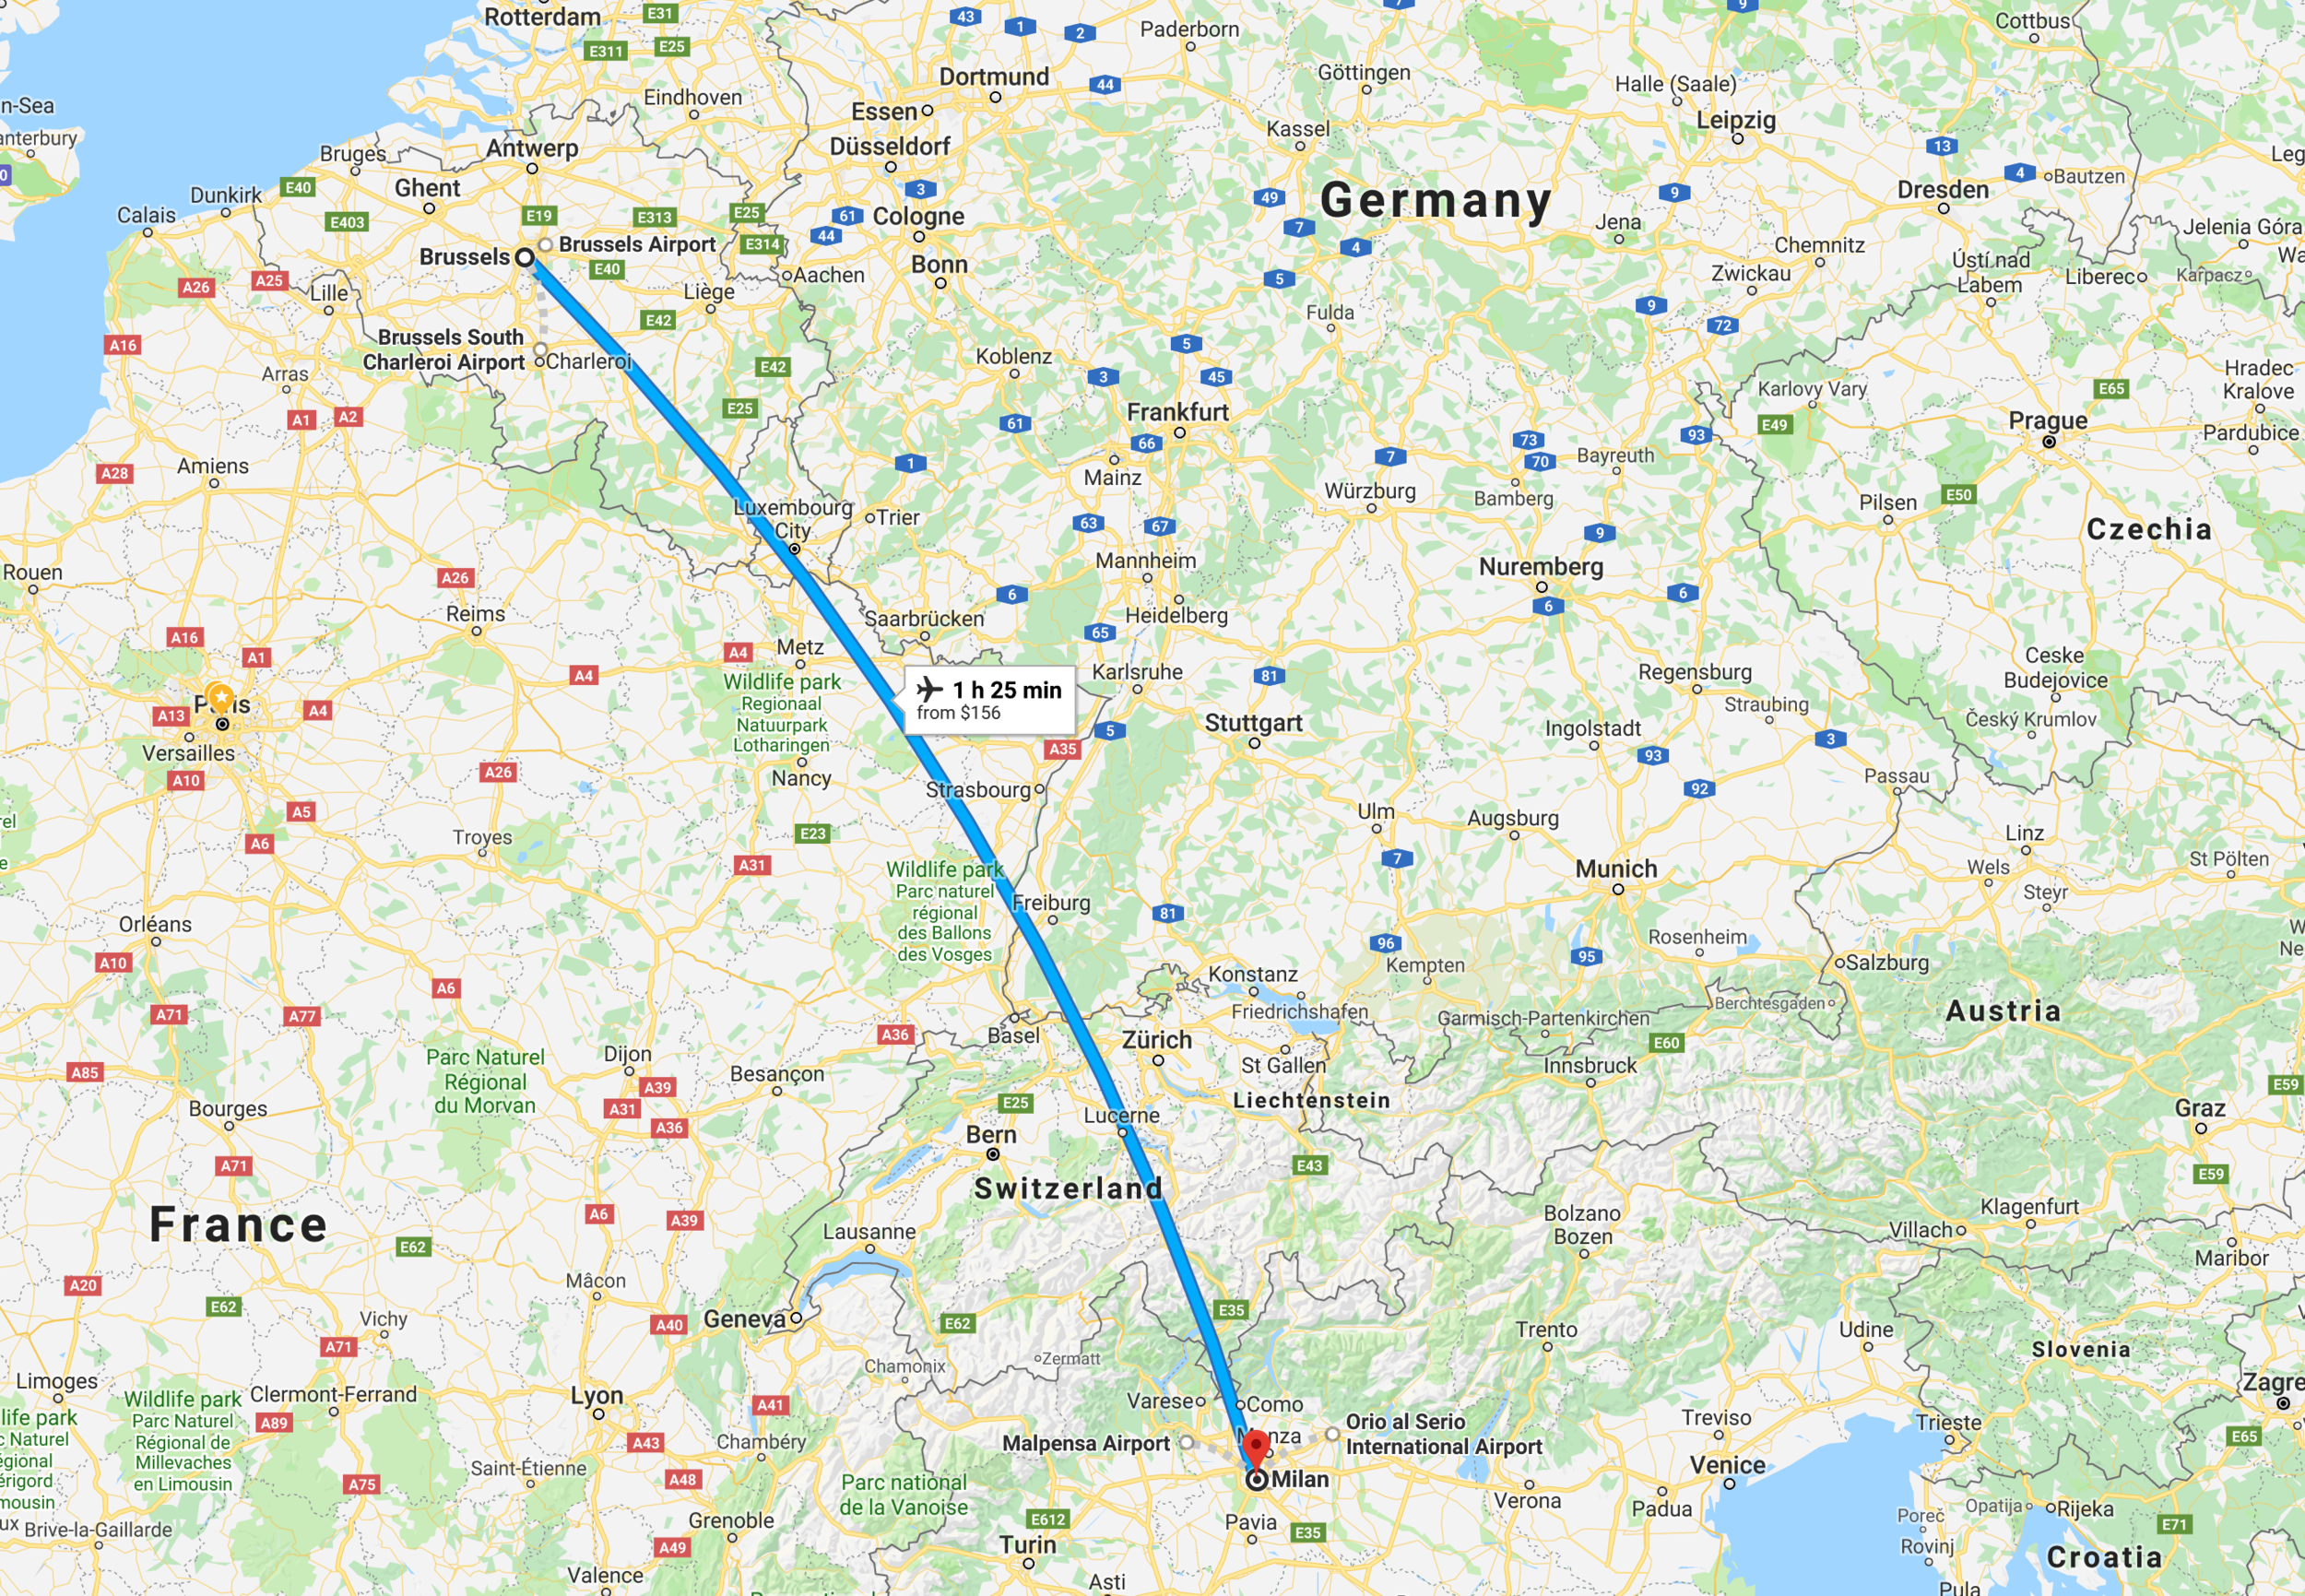 We will fly from Brussels to Milan. ( click to enlarge)